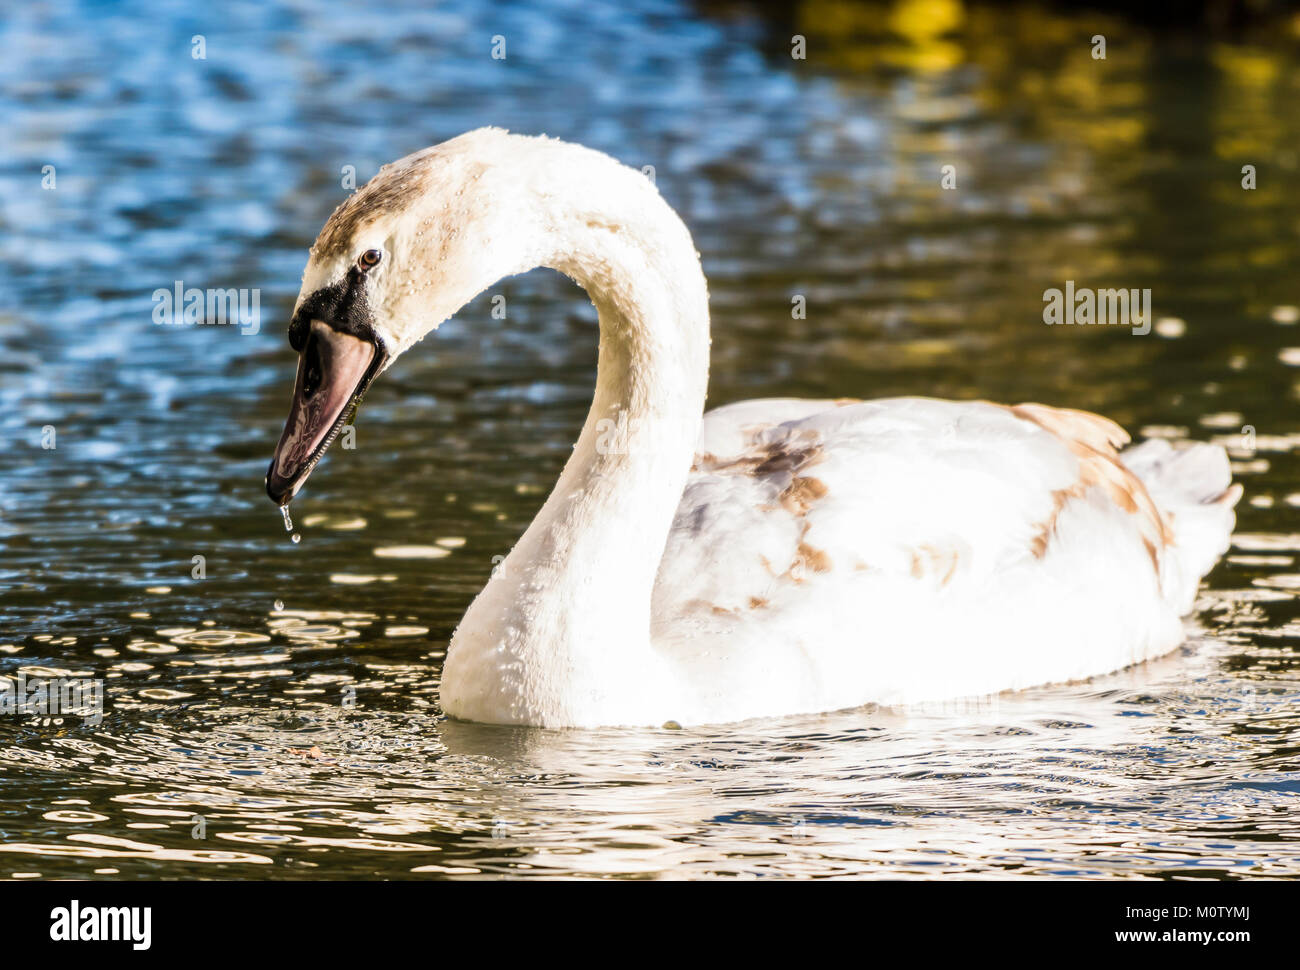 Mute Swan on the Octagon Lake, Stowe, Buckinghamshire, UK - Stock Image